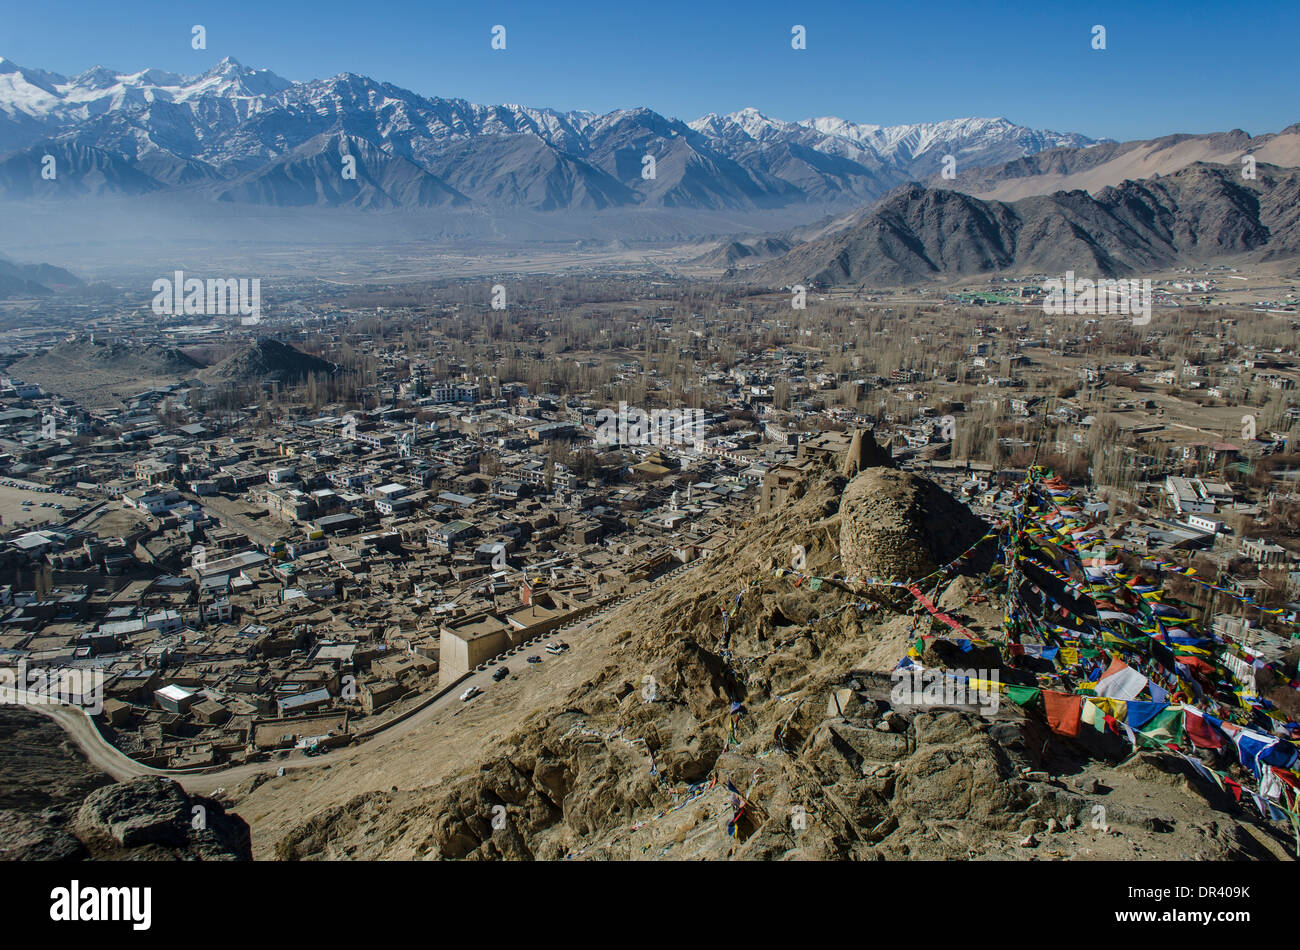 Townscape of Leh, India - Stock Image